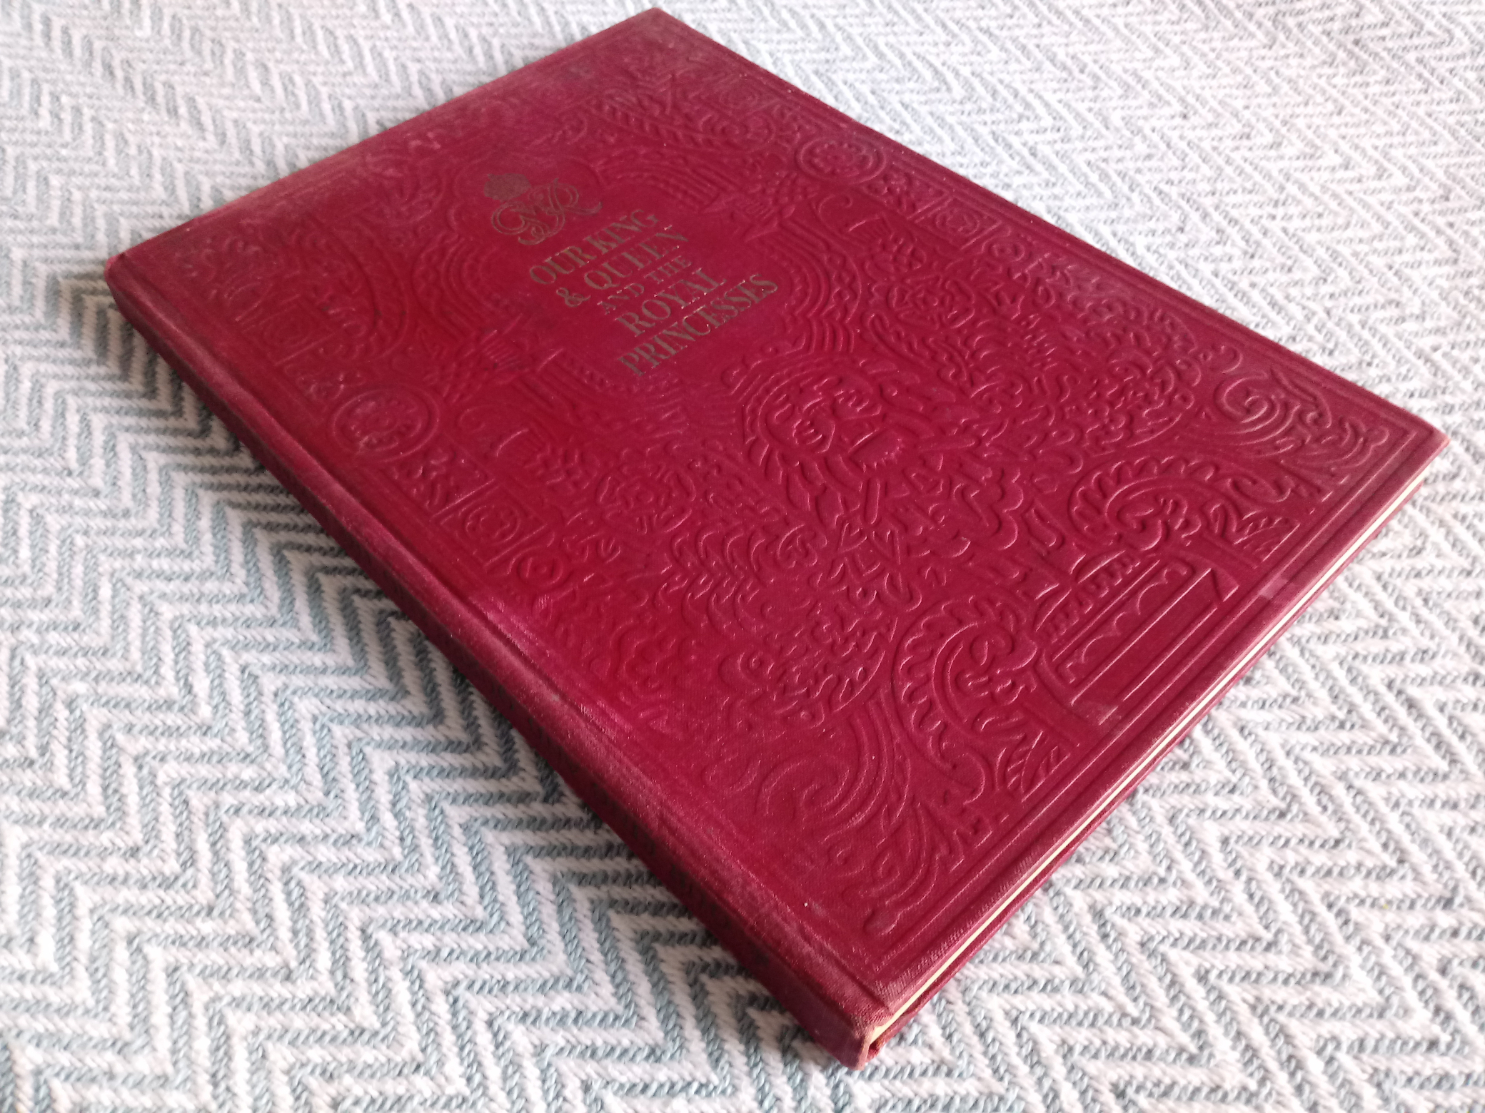 2 x hardback books published Odhams Press 1- The Coronation Of King George VI And Queen Elizabeth - Image 5 of 7